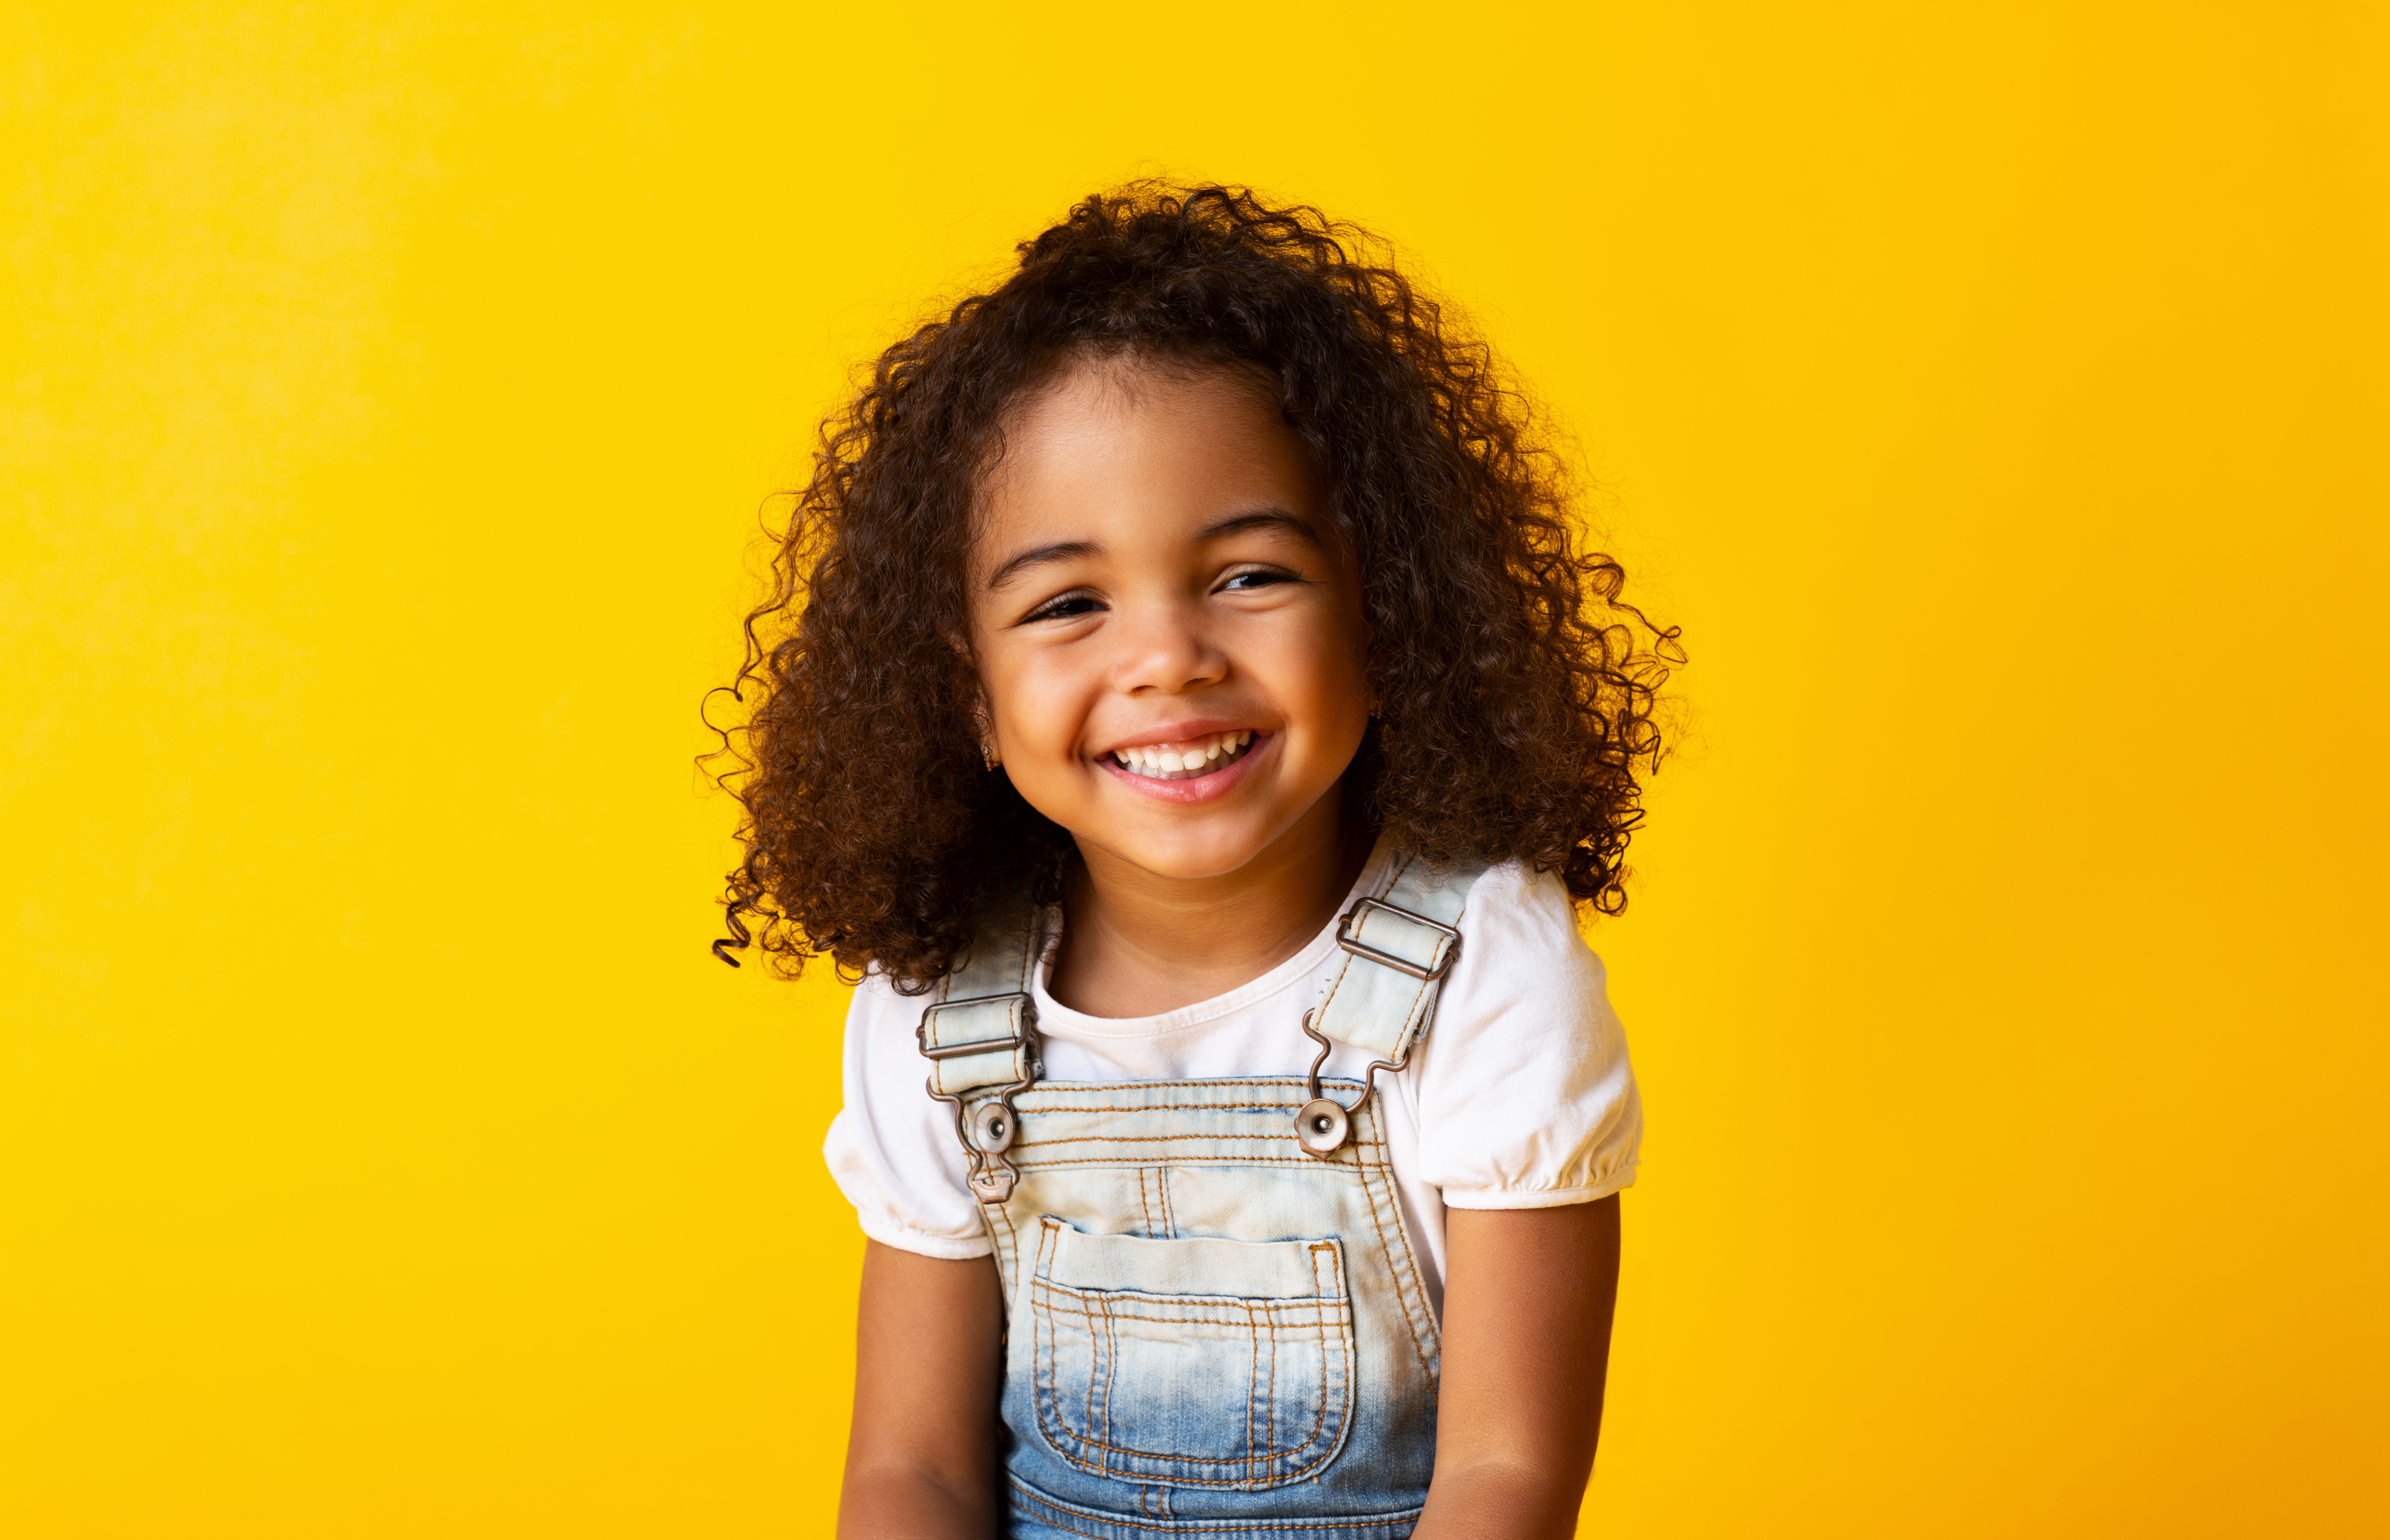 A young girl smiling for a picture.